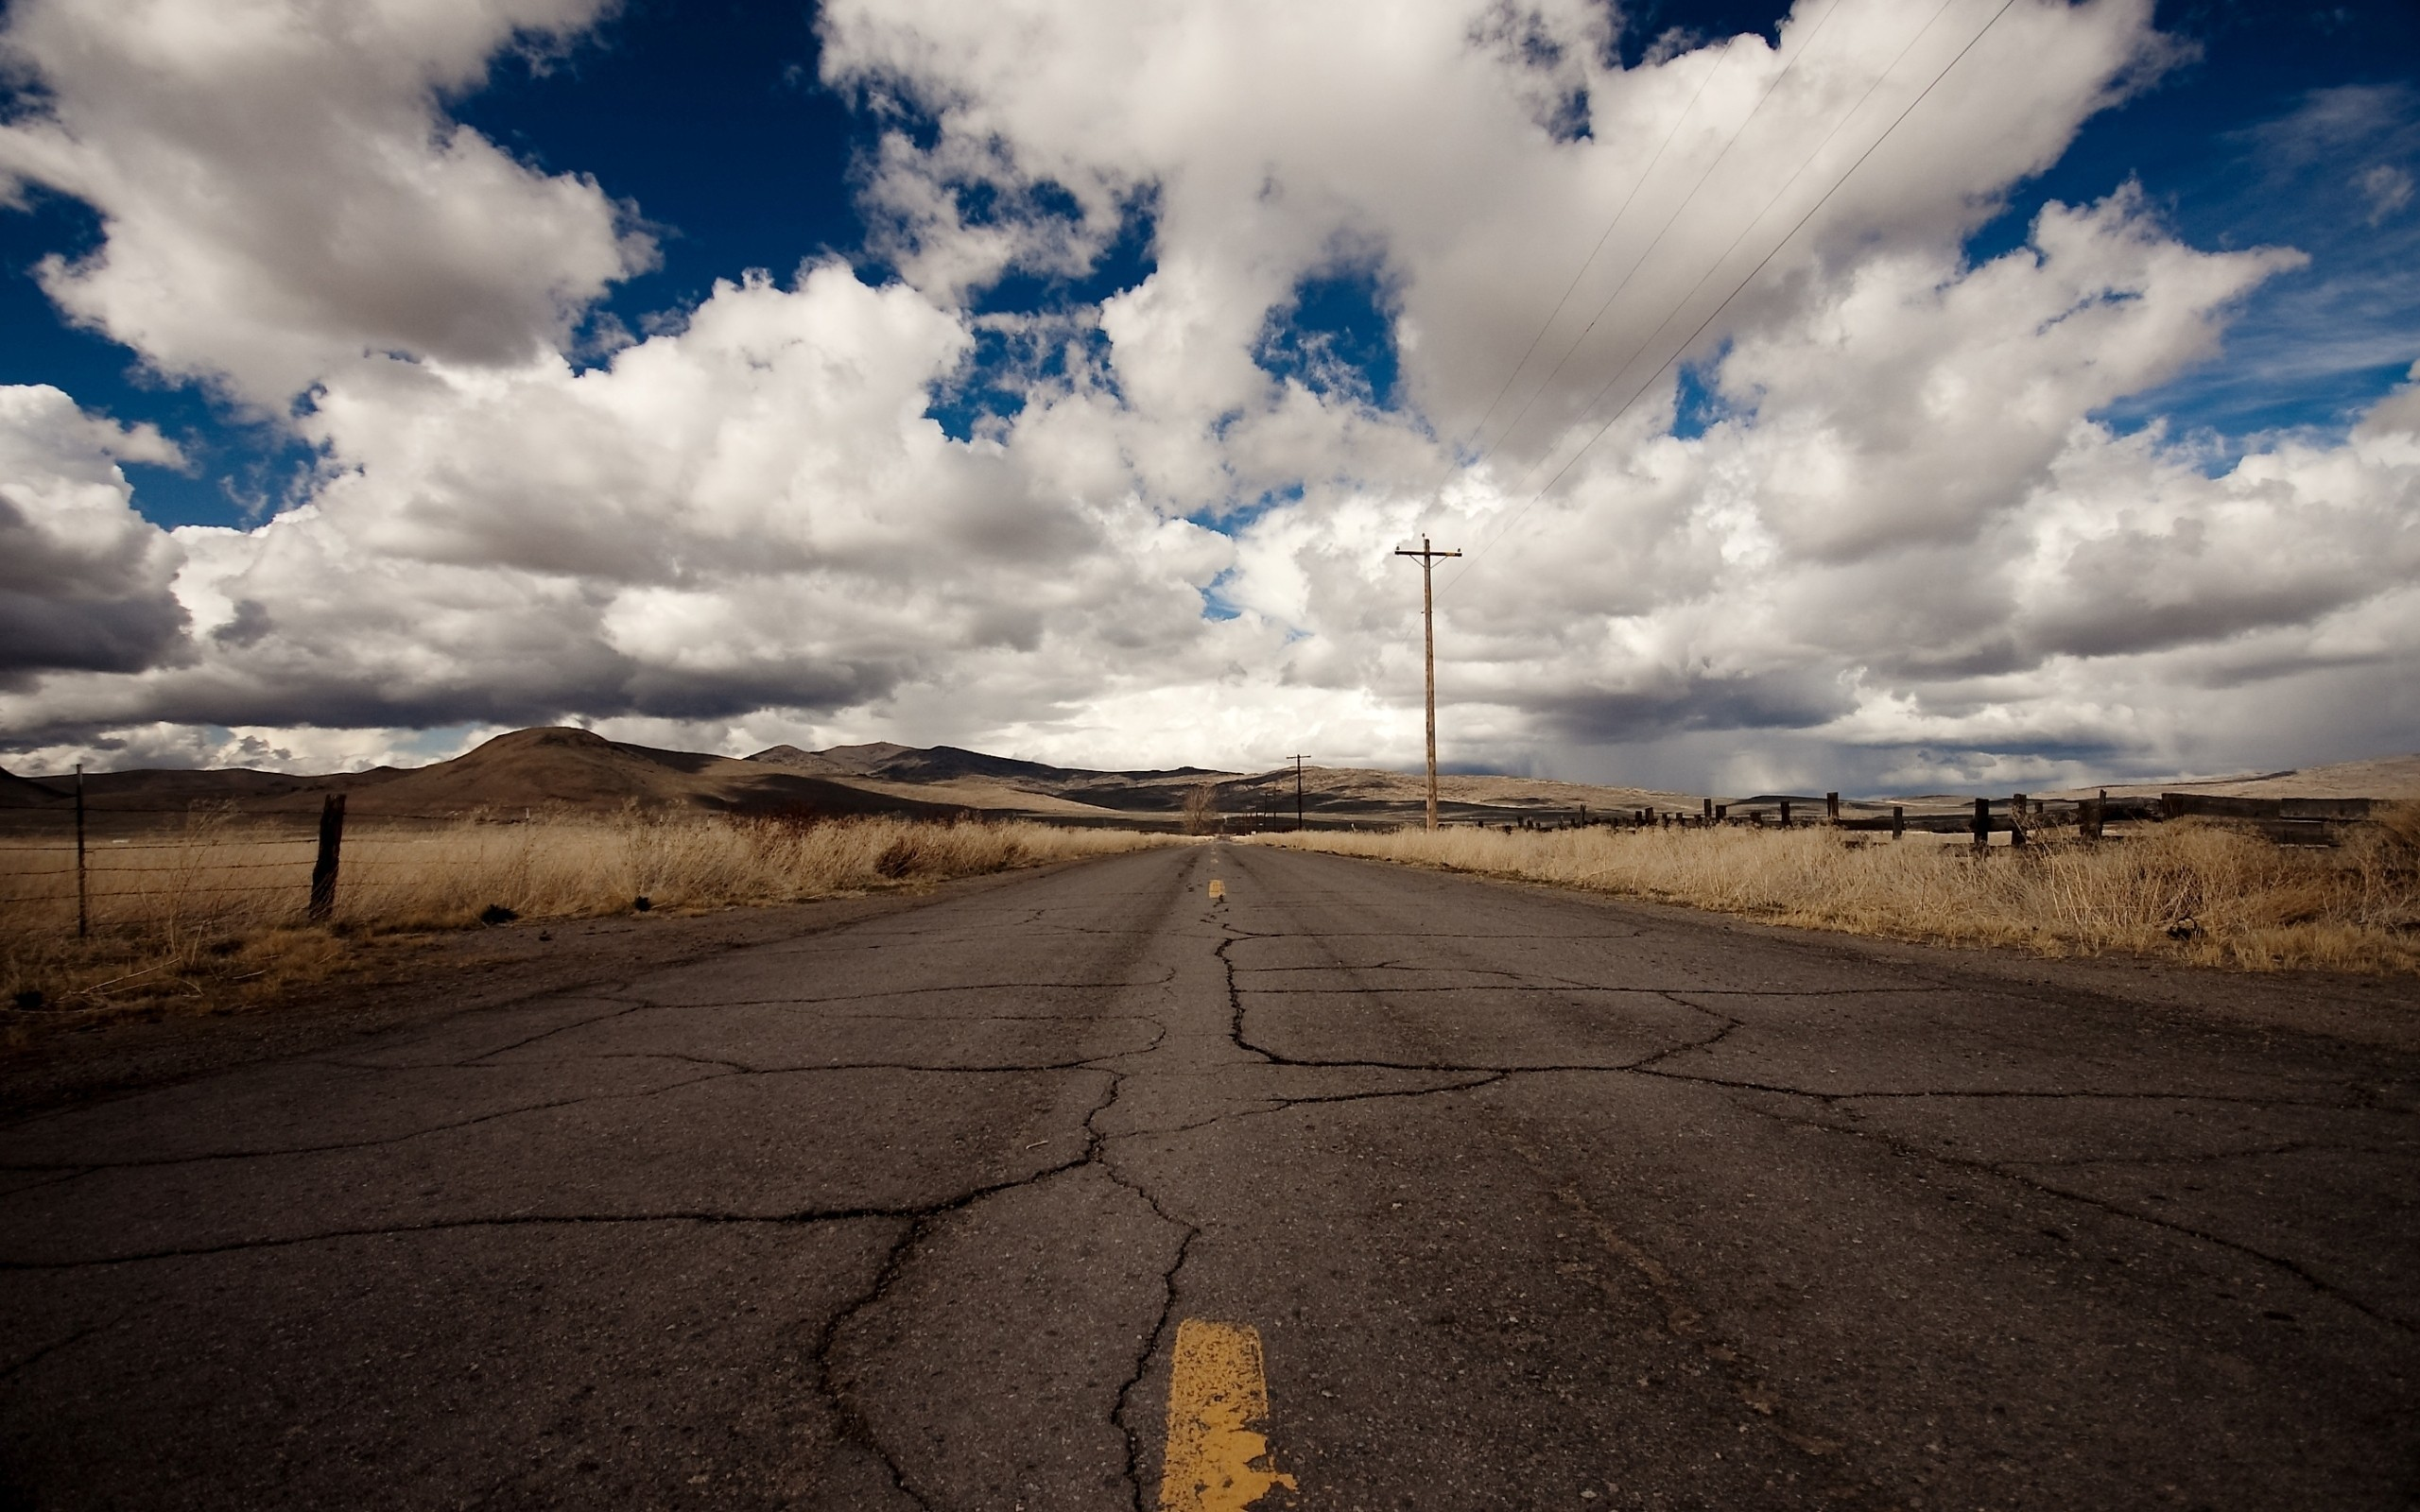 clouds Landscapes roads power HD Wallpaper